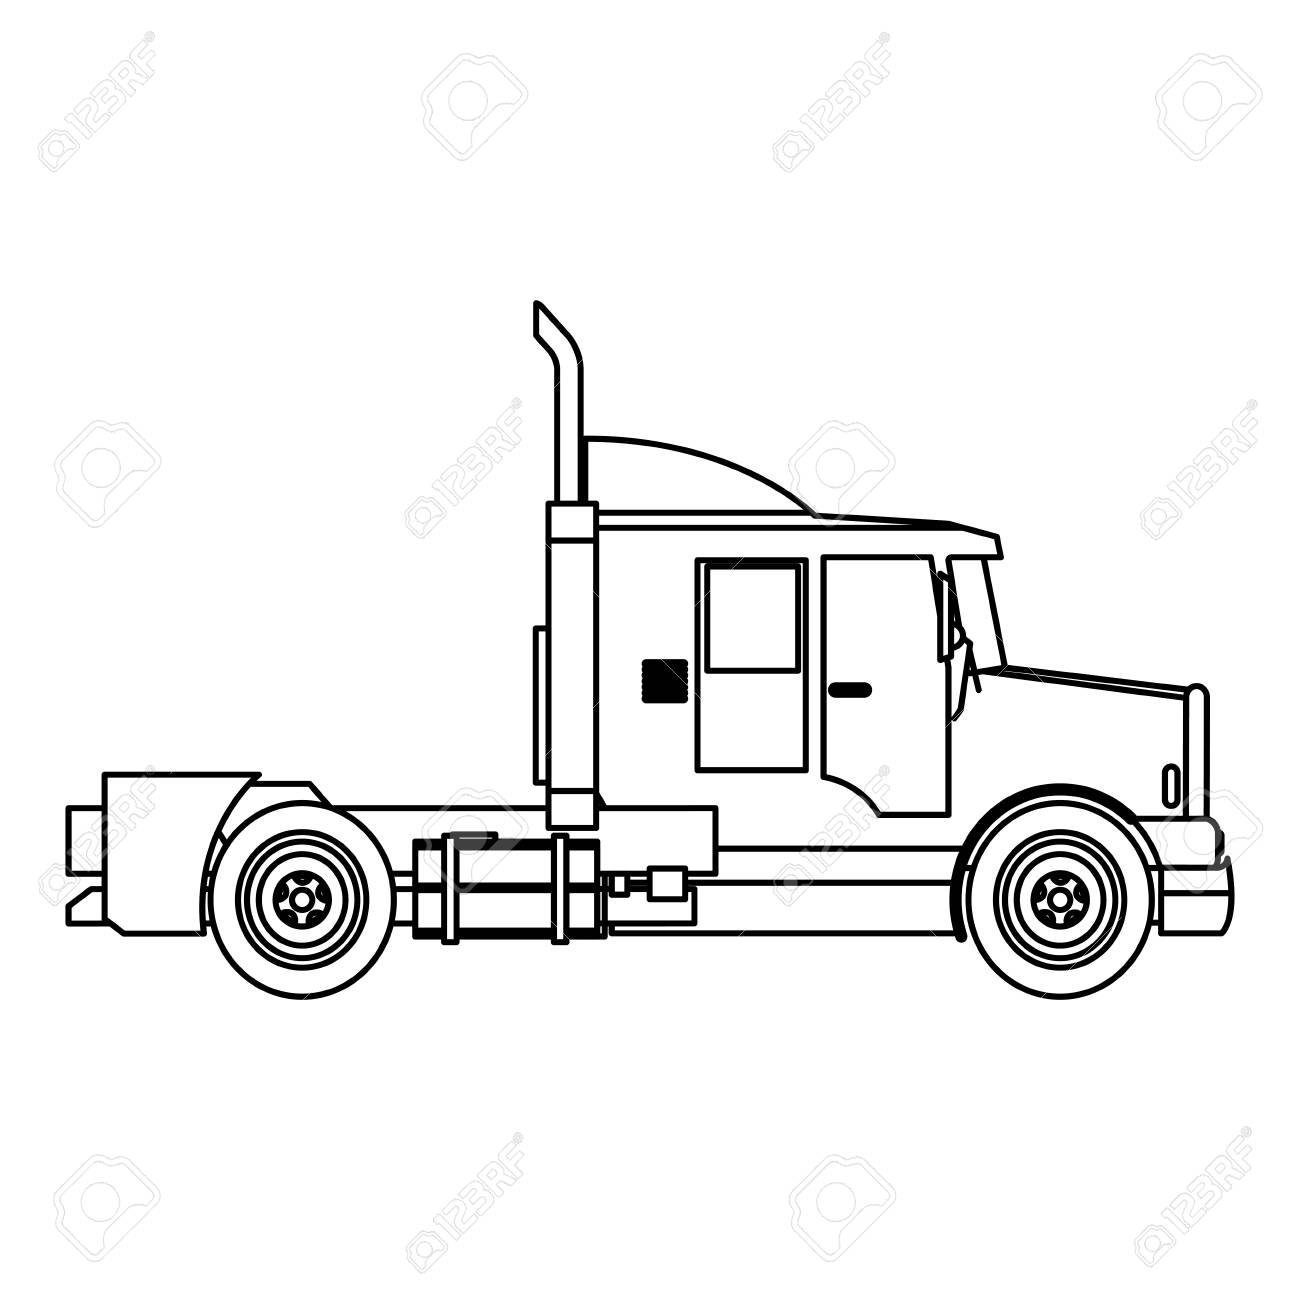 1300x1300 Semi Truck Cab Vehicle Commerce Outline Vector Illustration